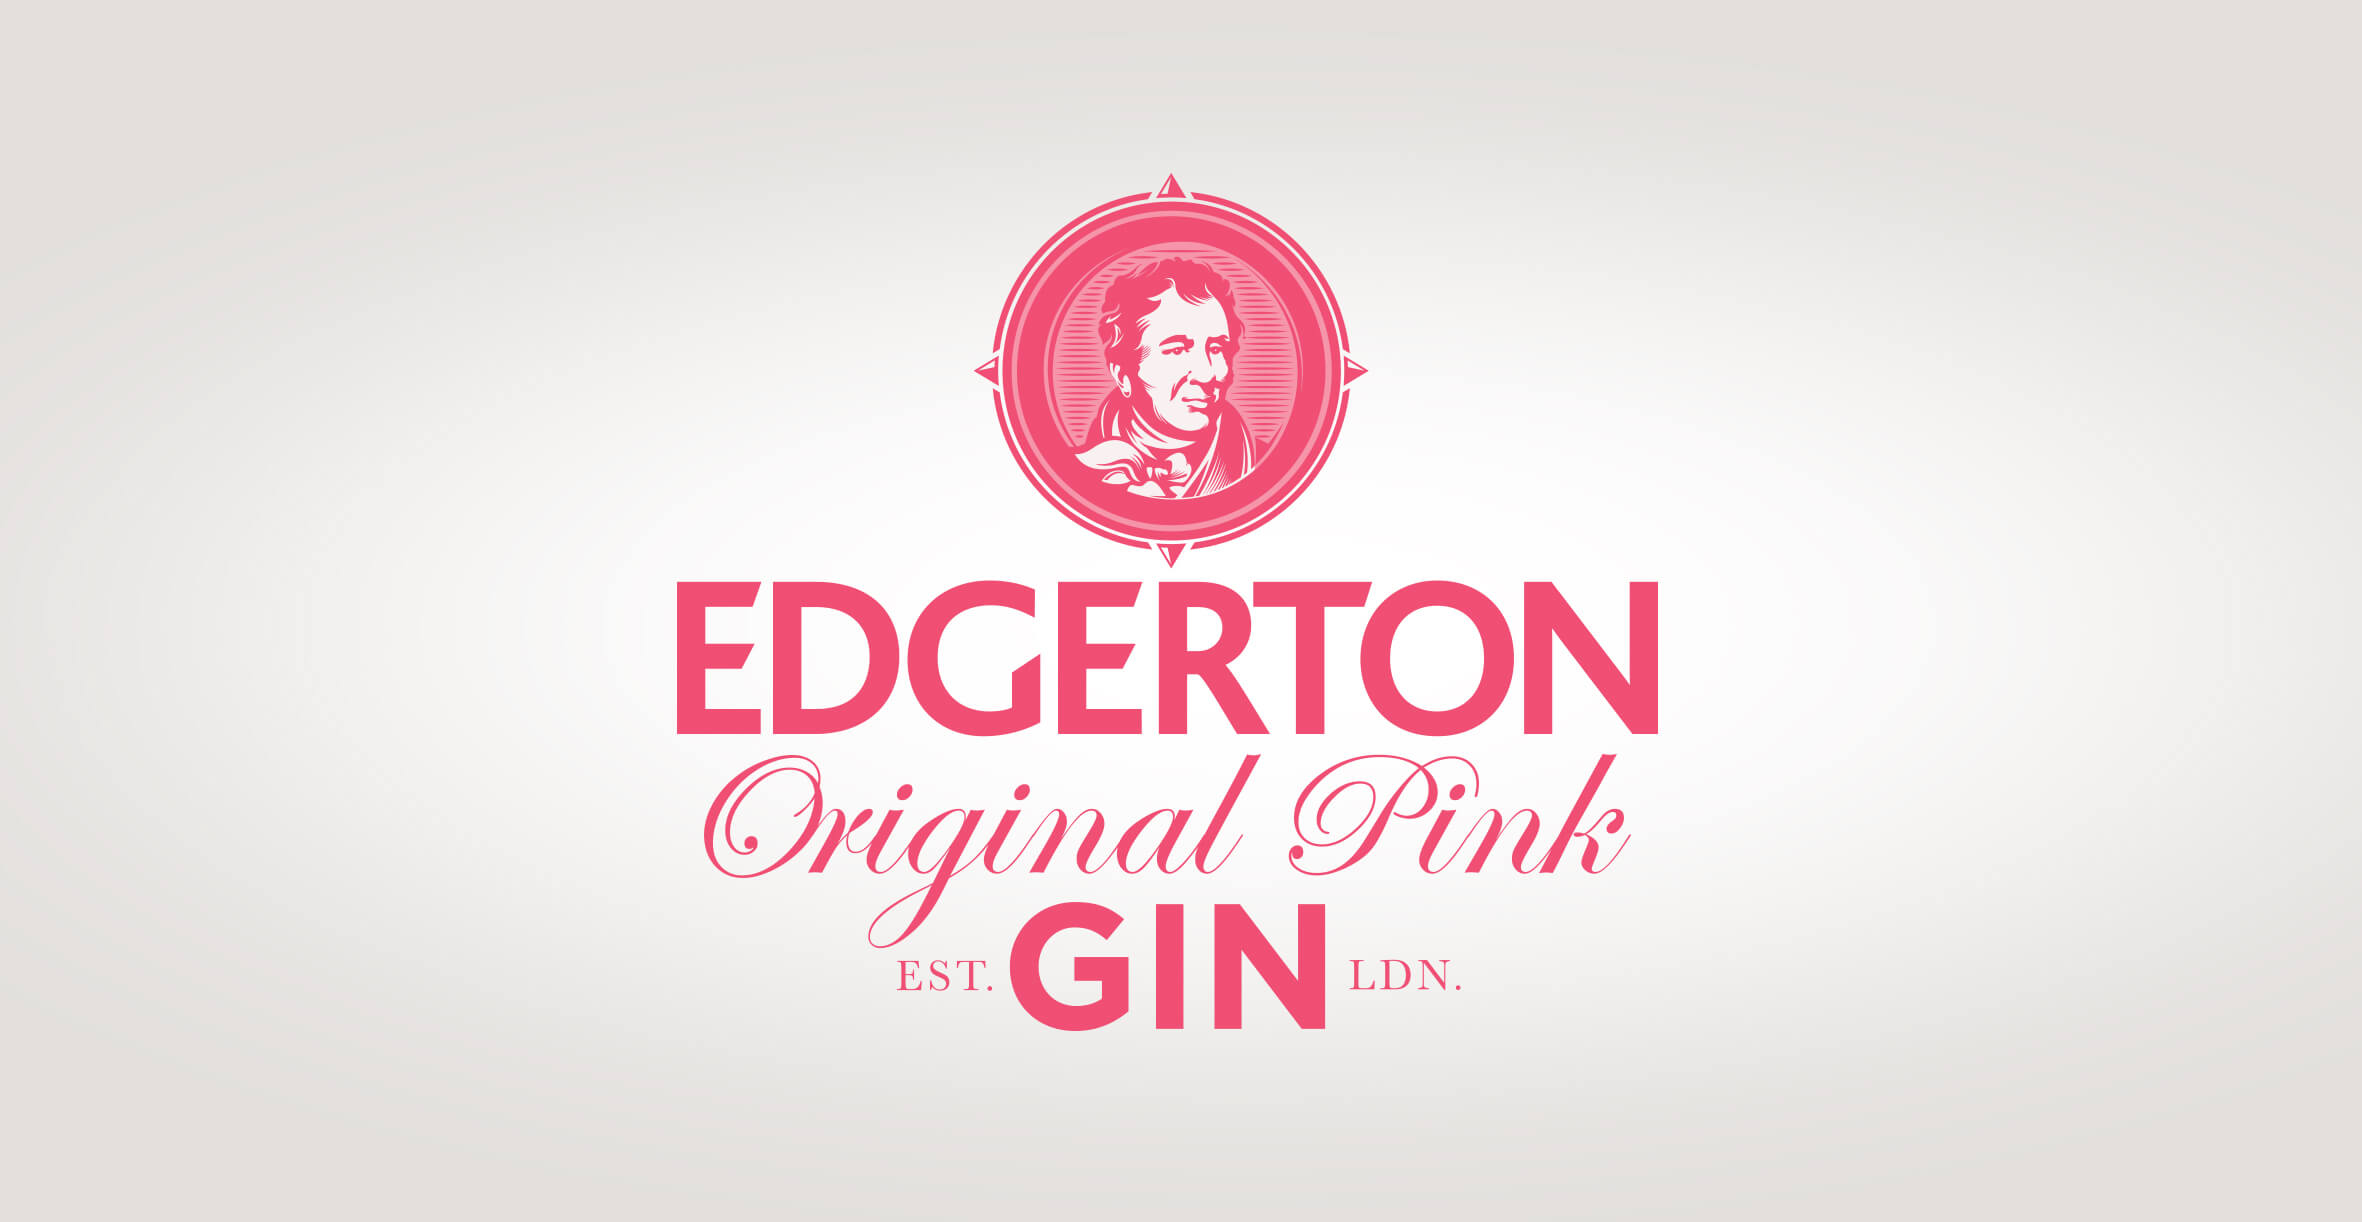 Brand identity and gin bottle label design for Edgerton Gin by Design Happy London - Branding and illustration